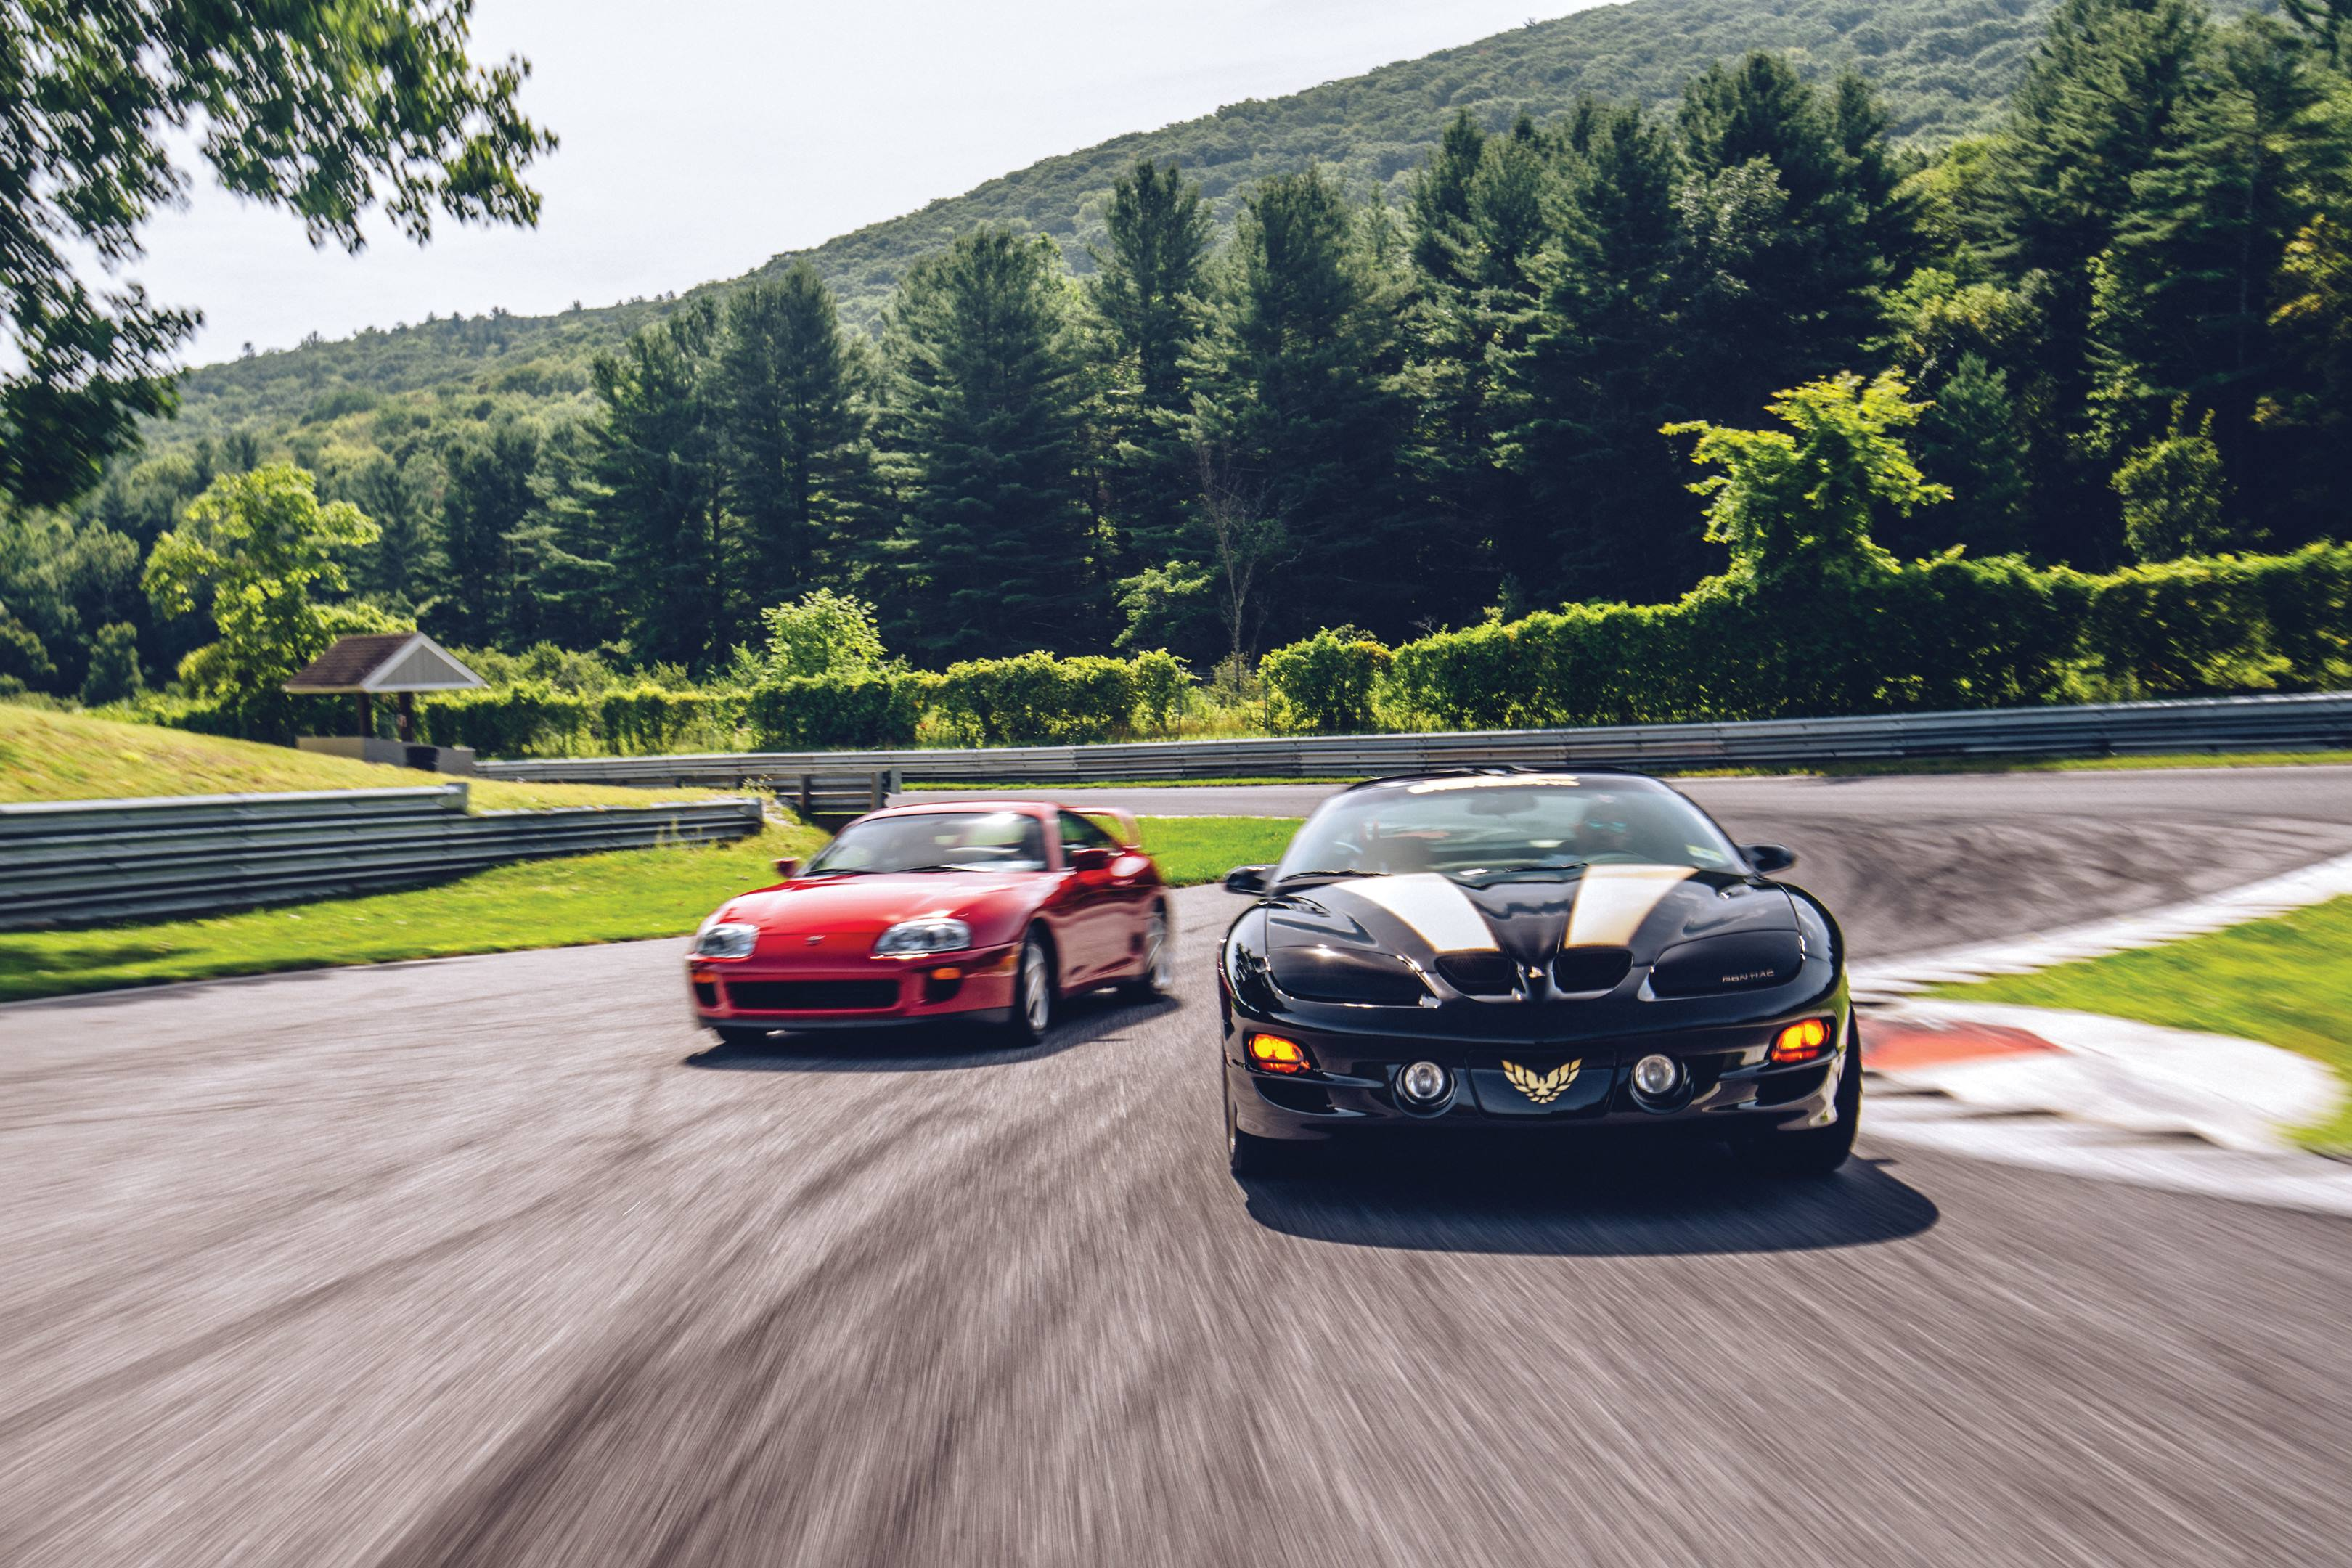 Pontiac Firebird Firehawk and Toyota Supra Turbo